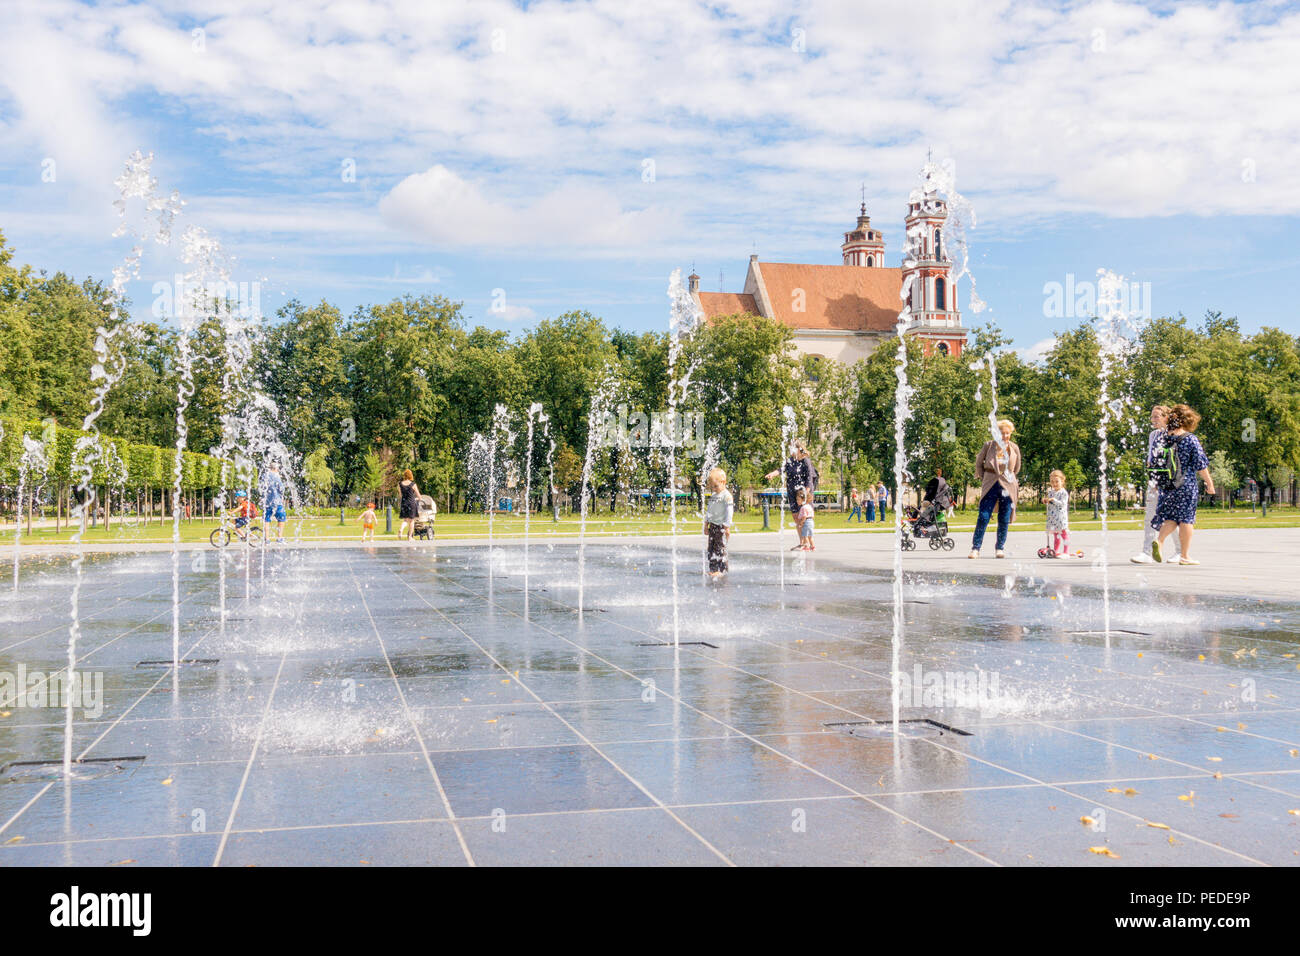 People have fun playing in city water fountain on hot summer day in Lukiskes square - Stock Image